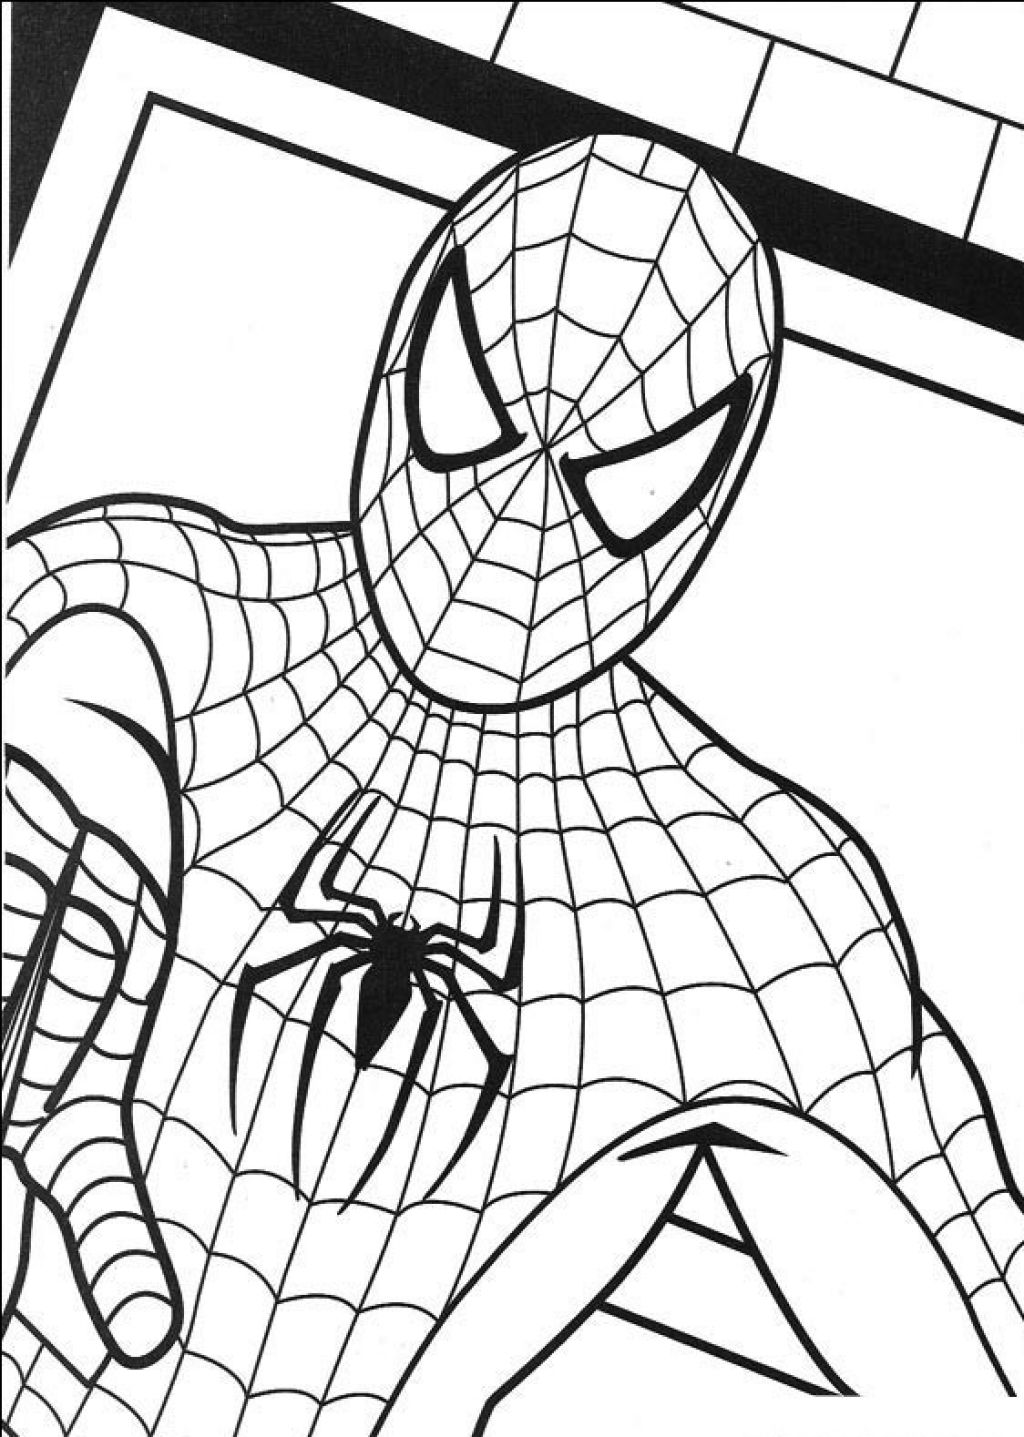 spiderman web coloring pages spiderman web rope printable coloring pages spiderman web spiderman pages coloring